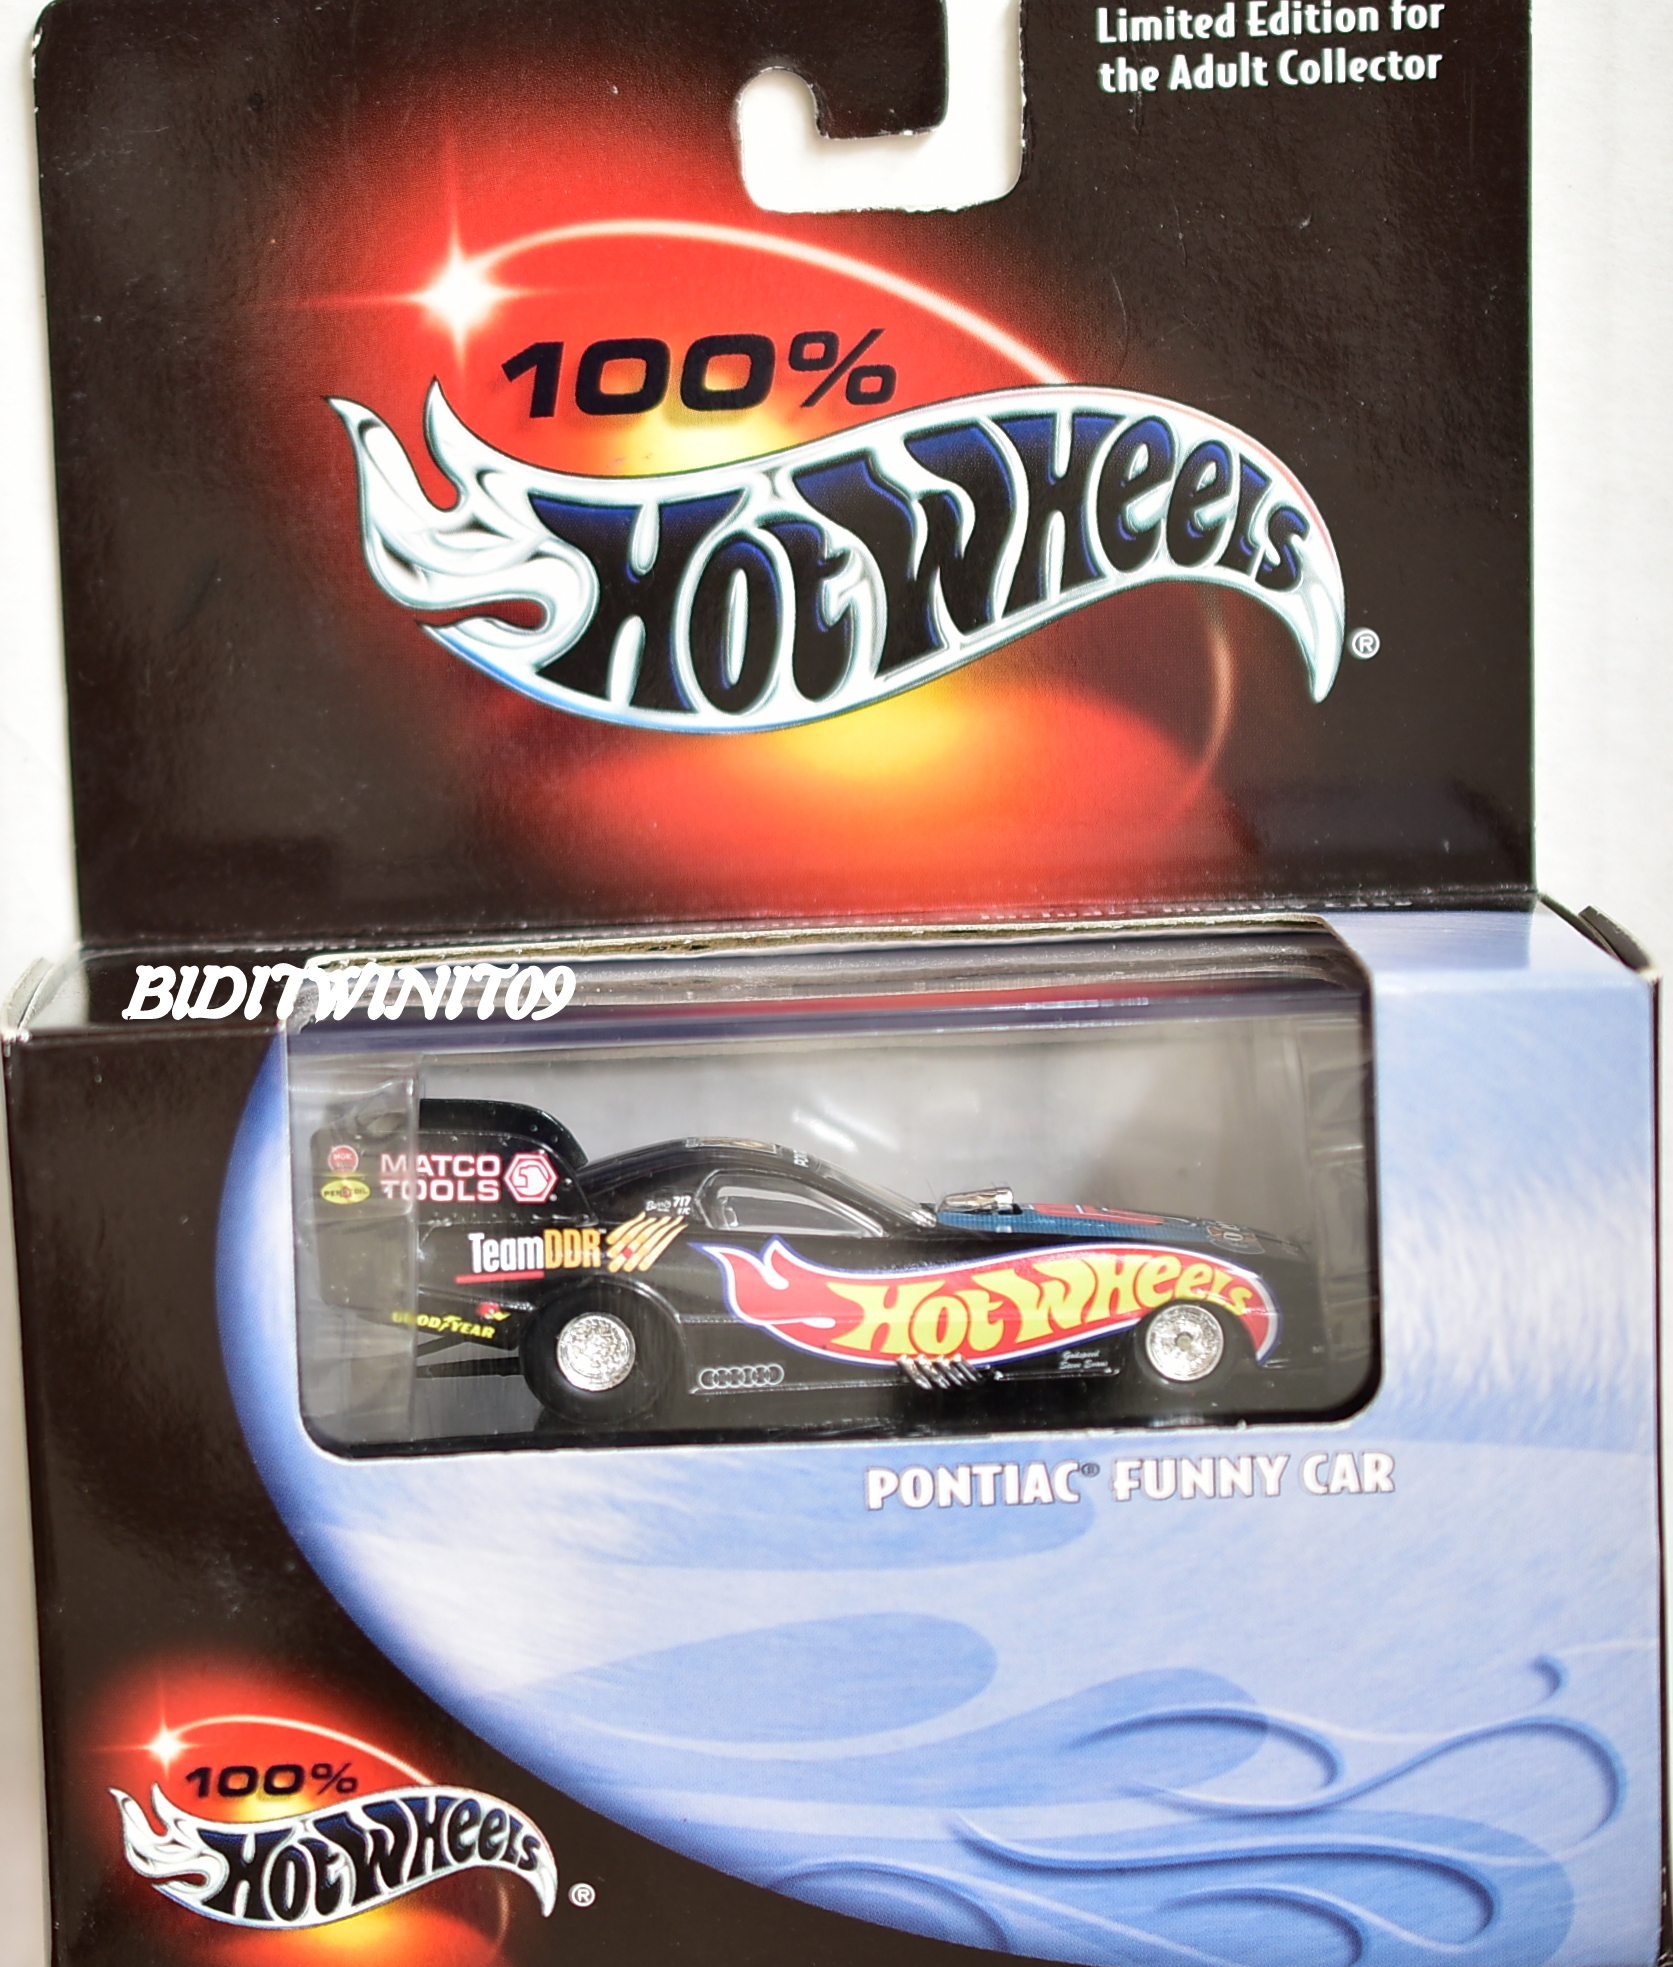 HOT WHEELS 100% BLACK BOX PONTIAC FUNNY CAR LIMITED EDITION E+